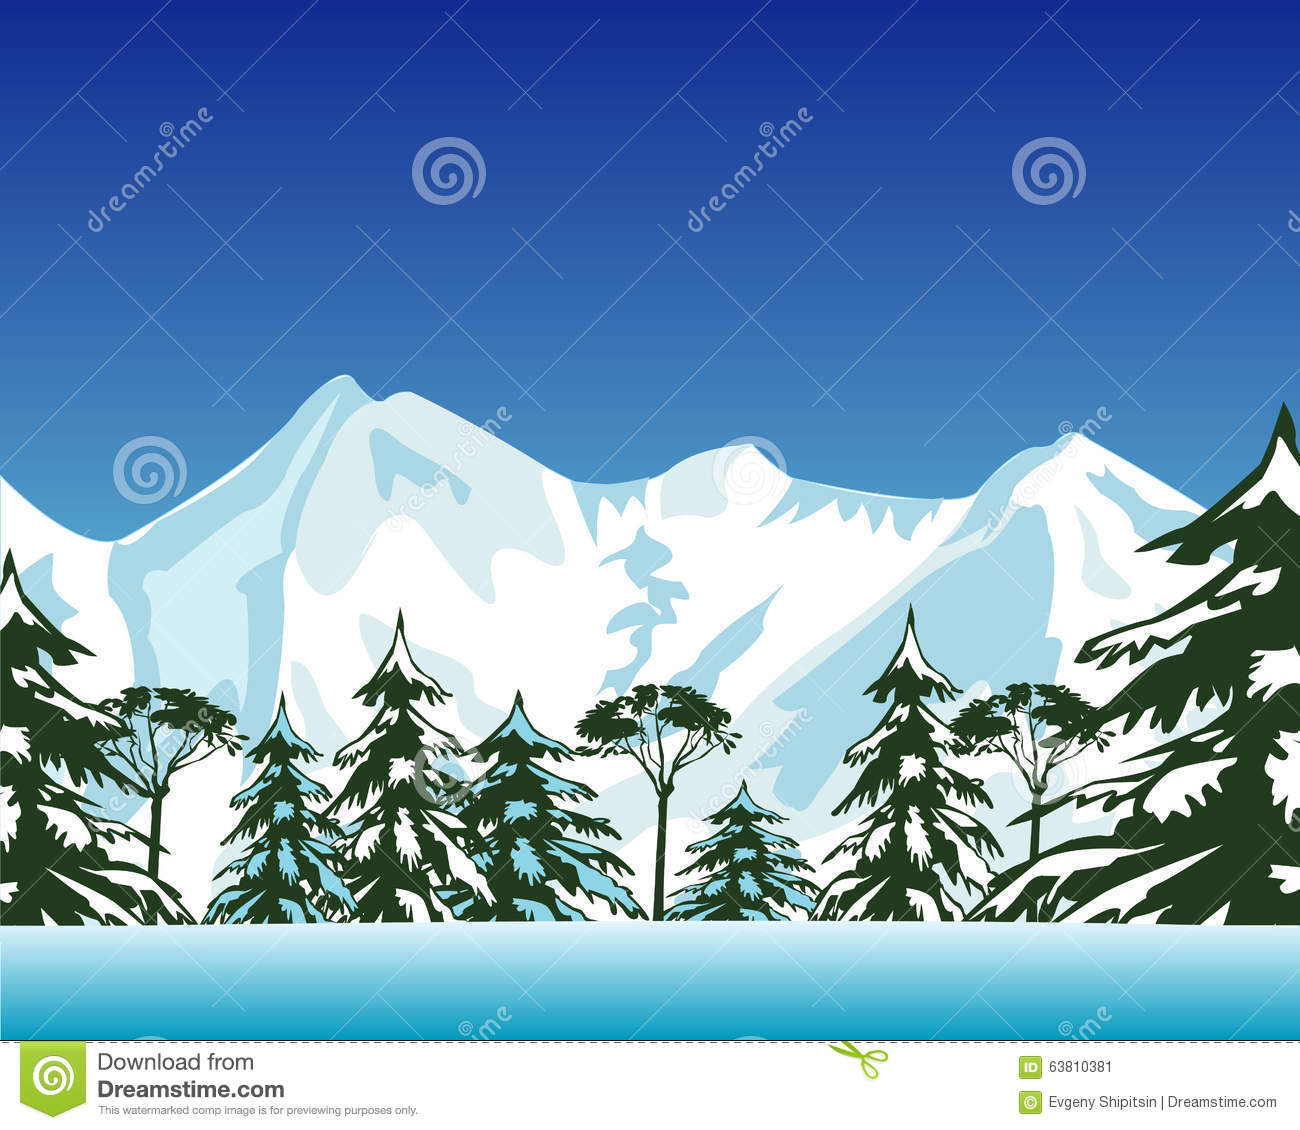 Mountains and wood in winter